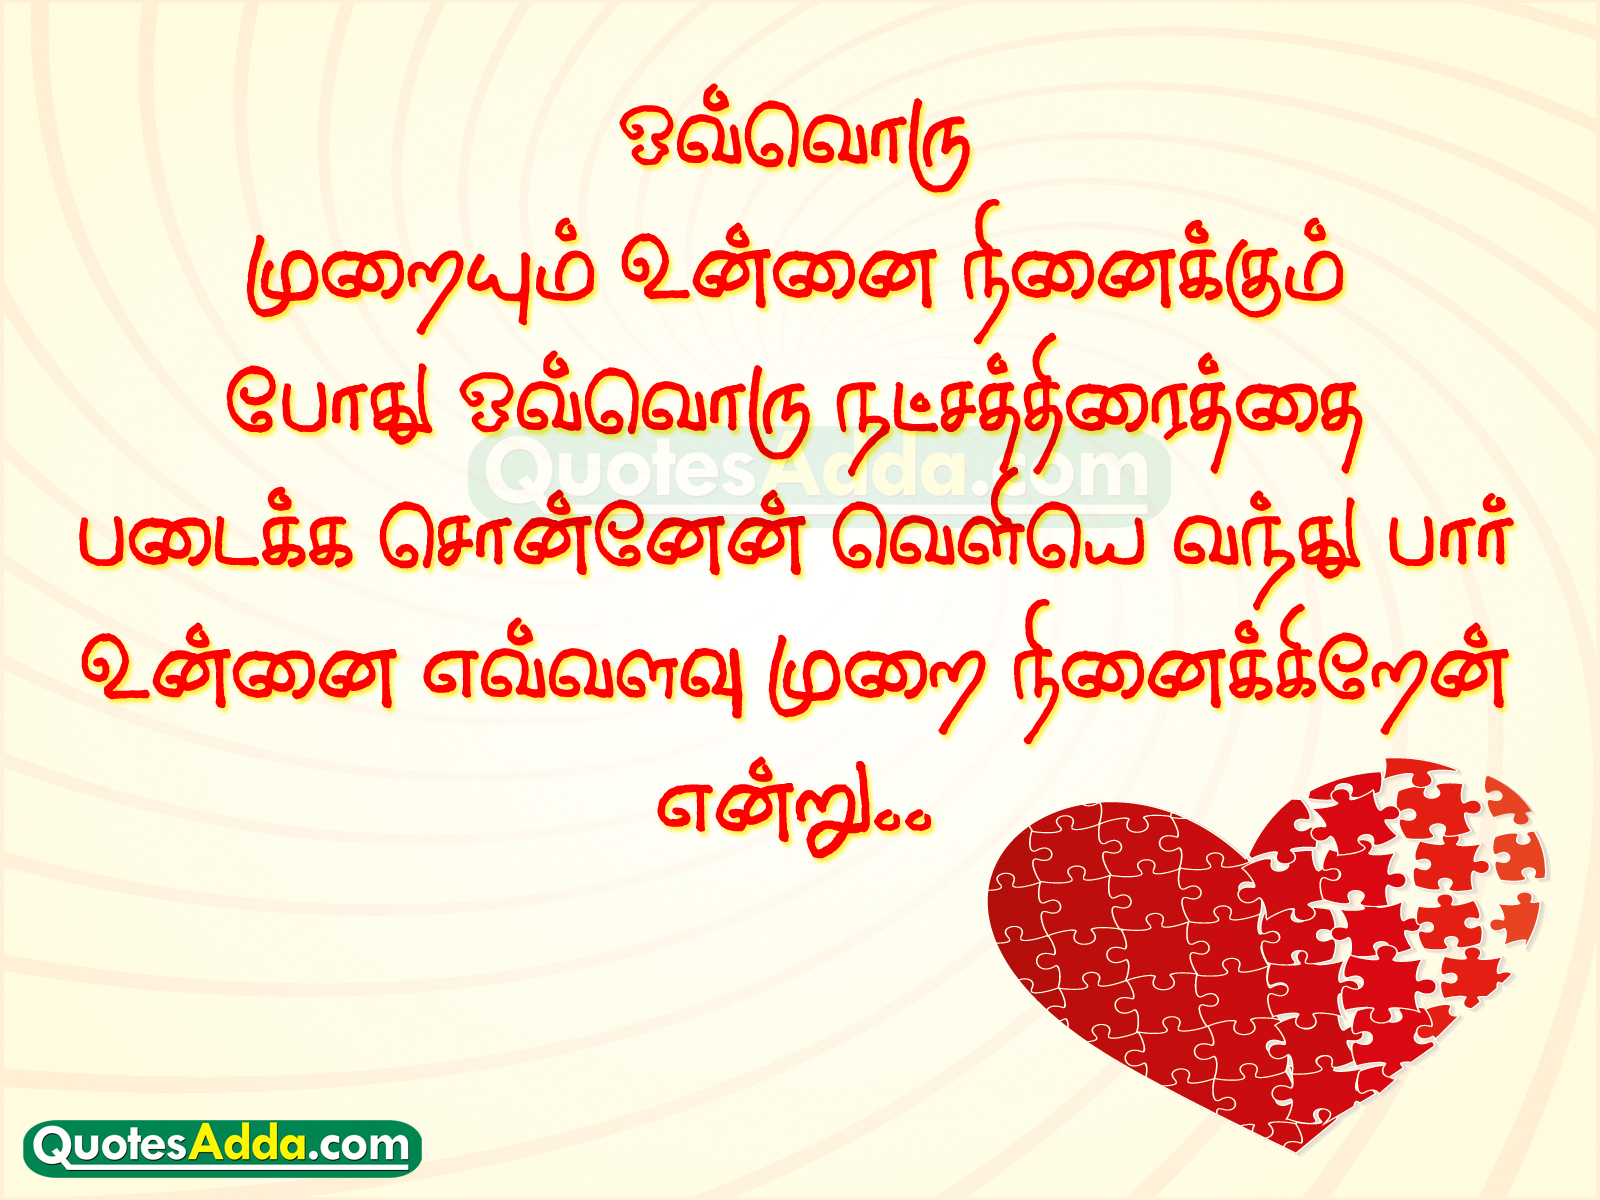 Tamil Love Quotes Distance Love Quotes In Tamil 1600x1200 Wallpaper Teahub Io